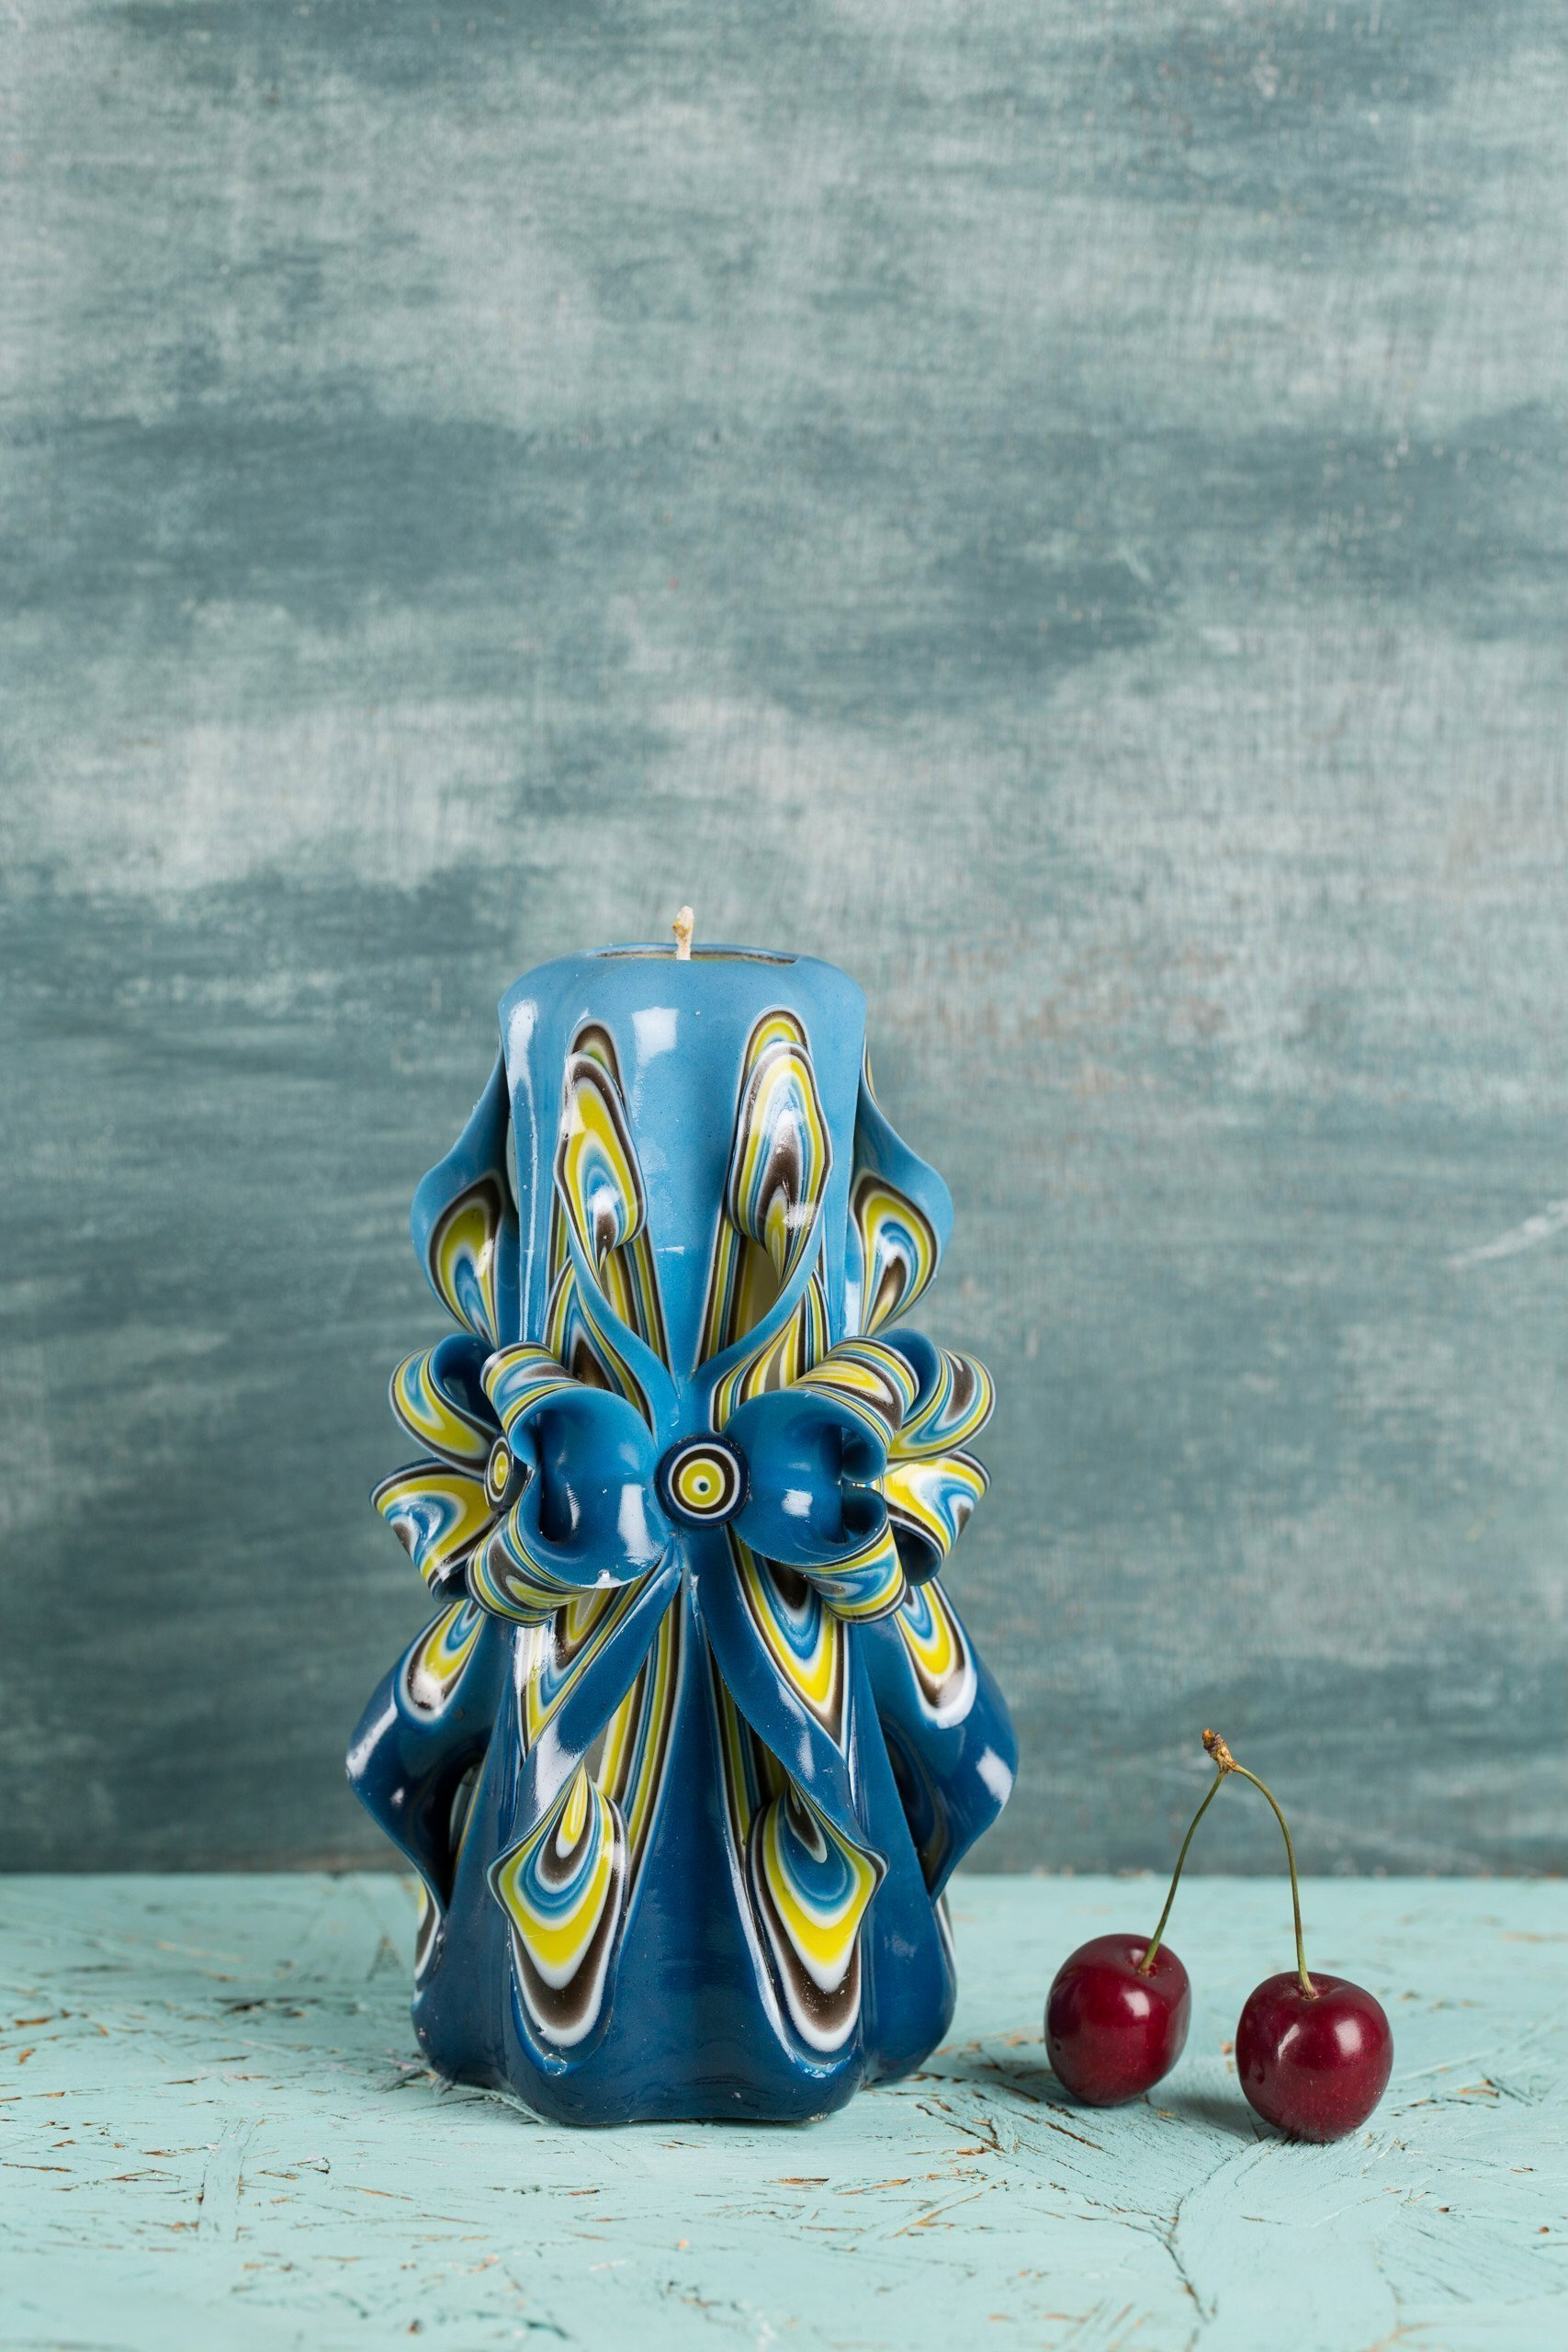 Candle set - Blue and Yellow - Bright colors - Decorative carved candle - EveCandles by EveCandles (Image #2)